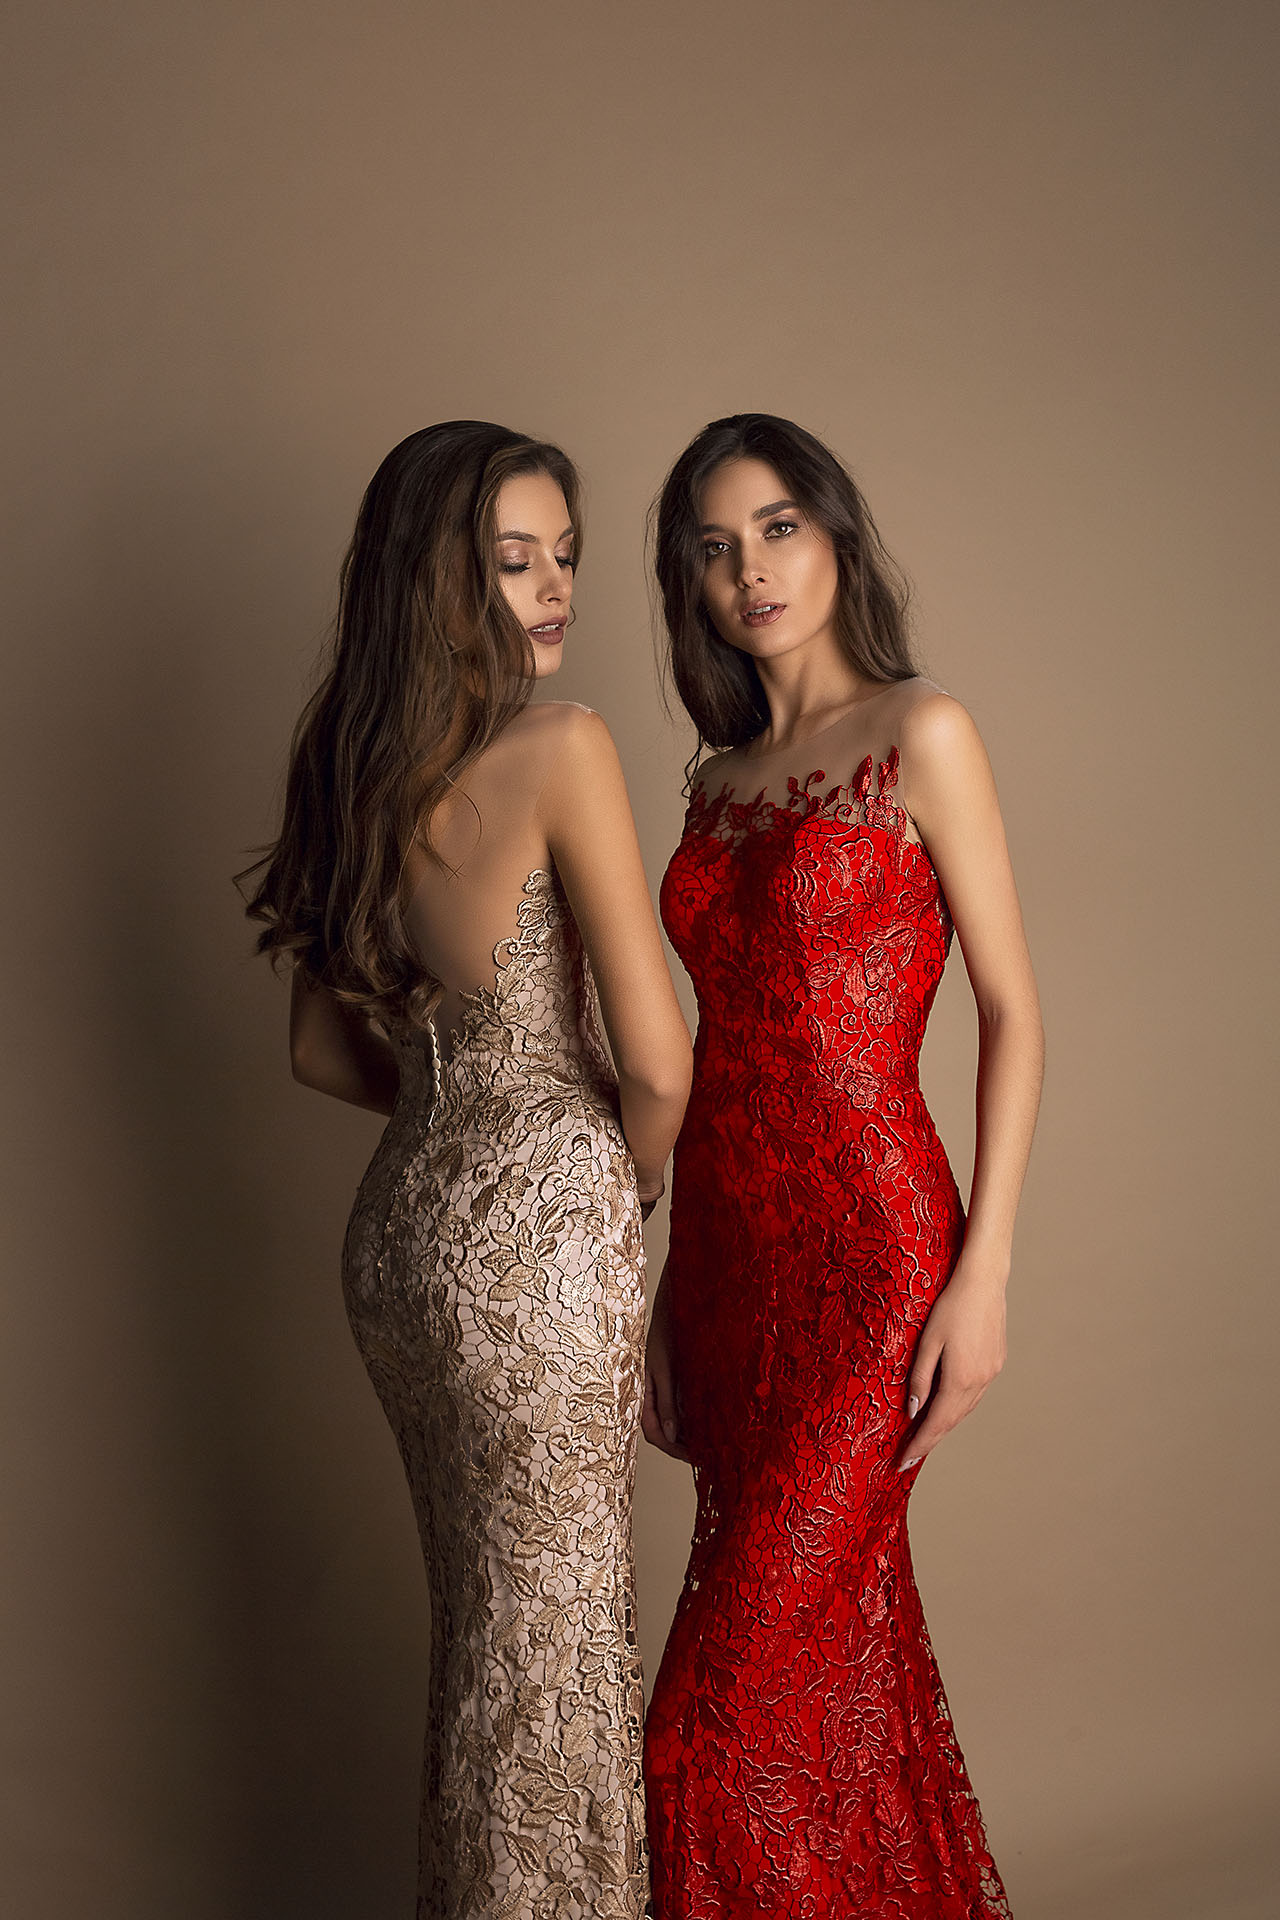 Evening Dresses 1603 Silhouette  Fitted  Color  Cappuccino  Red  Neckline  Sweetheart  Illusion  Sleeves  Sleeveless  Train  No train - foto 2